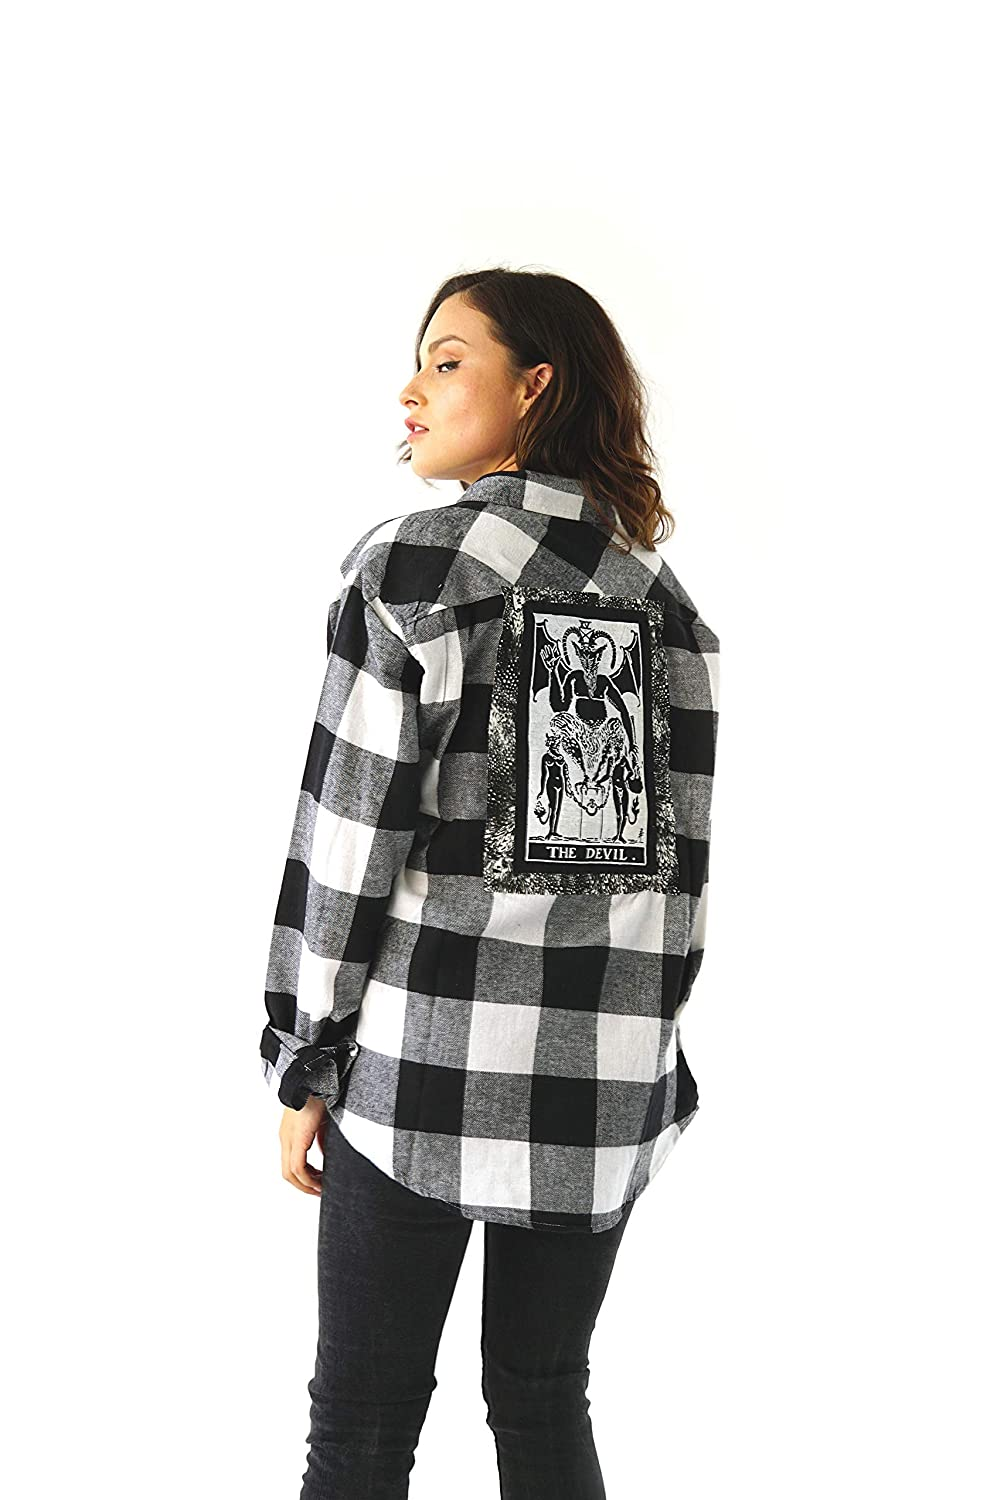 b796f4cc3a56cb Amazon.com: Unisex Sisters Of The Moon Black And White Devil Flannel:  Handmade